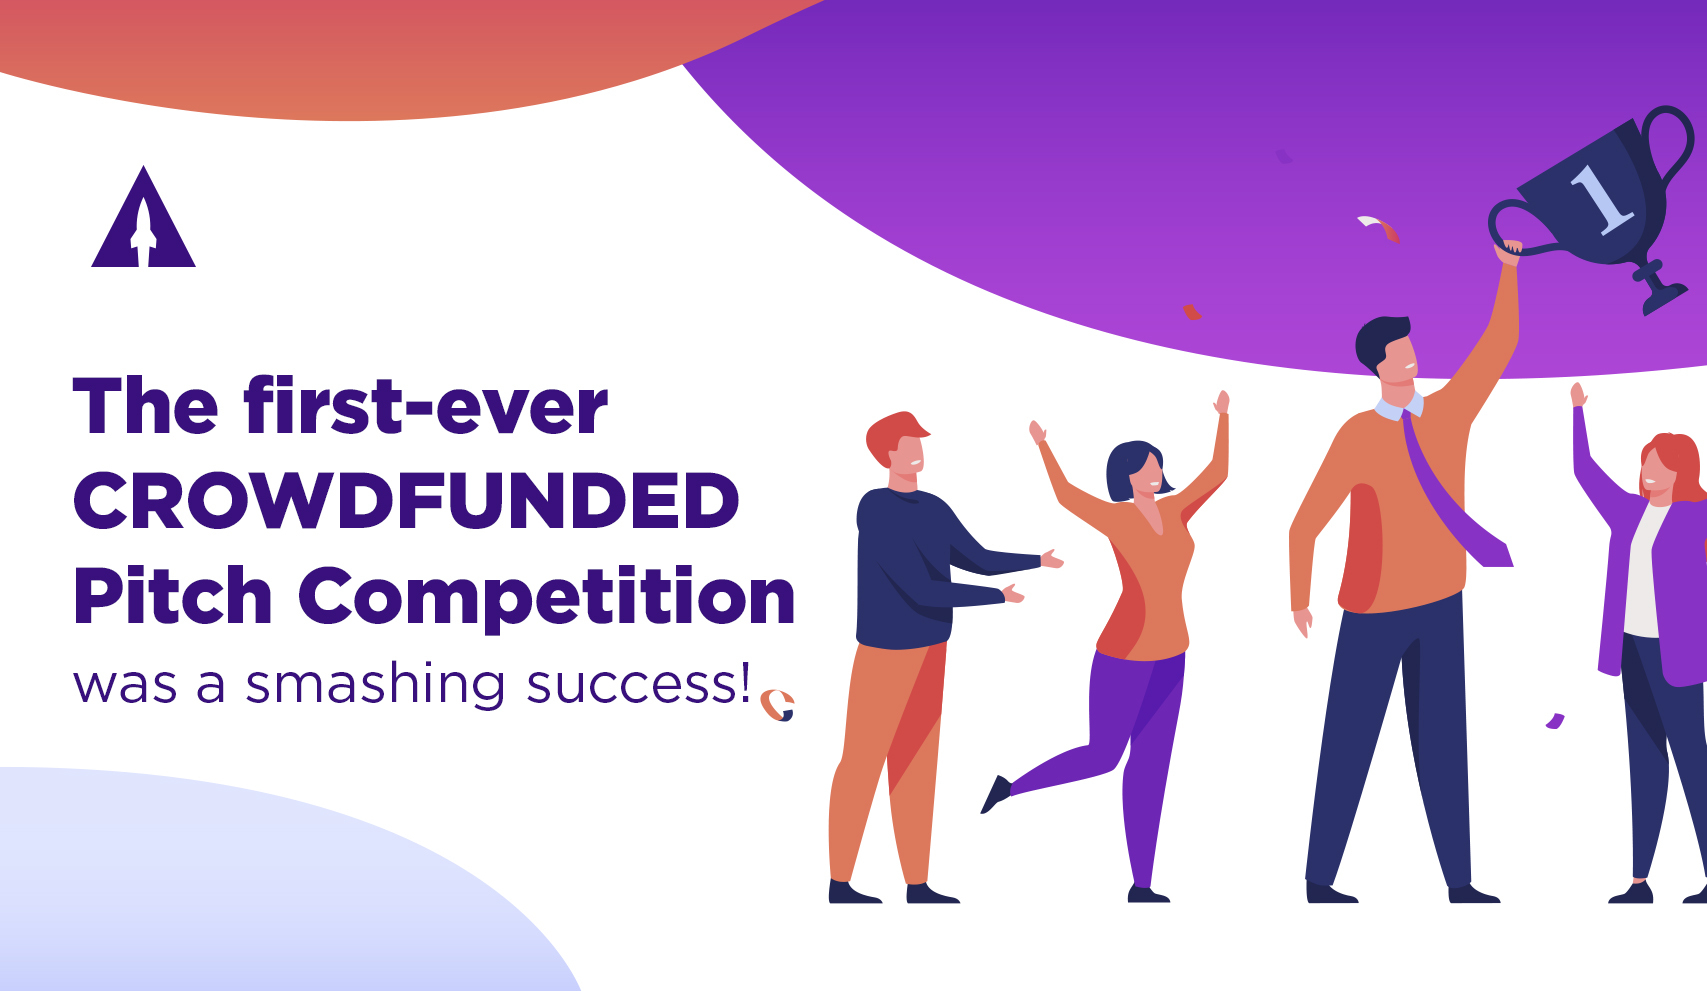 The first-ever CROWDFUNDED Pitch Competition was a smashing success!